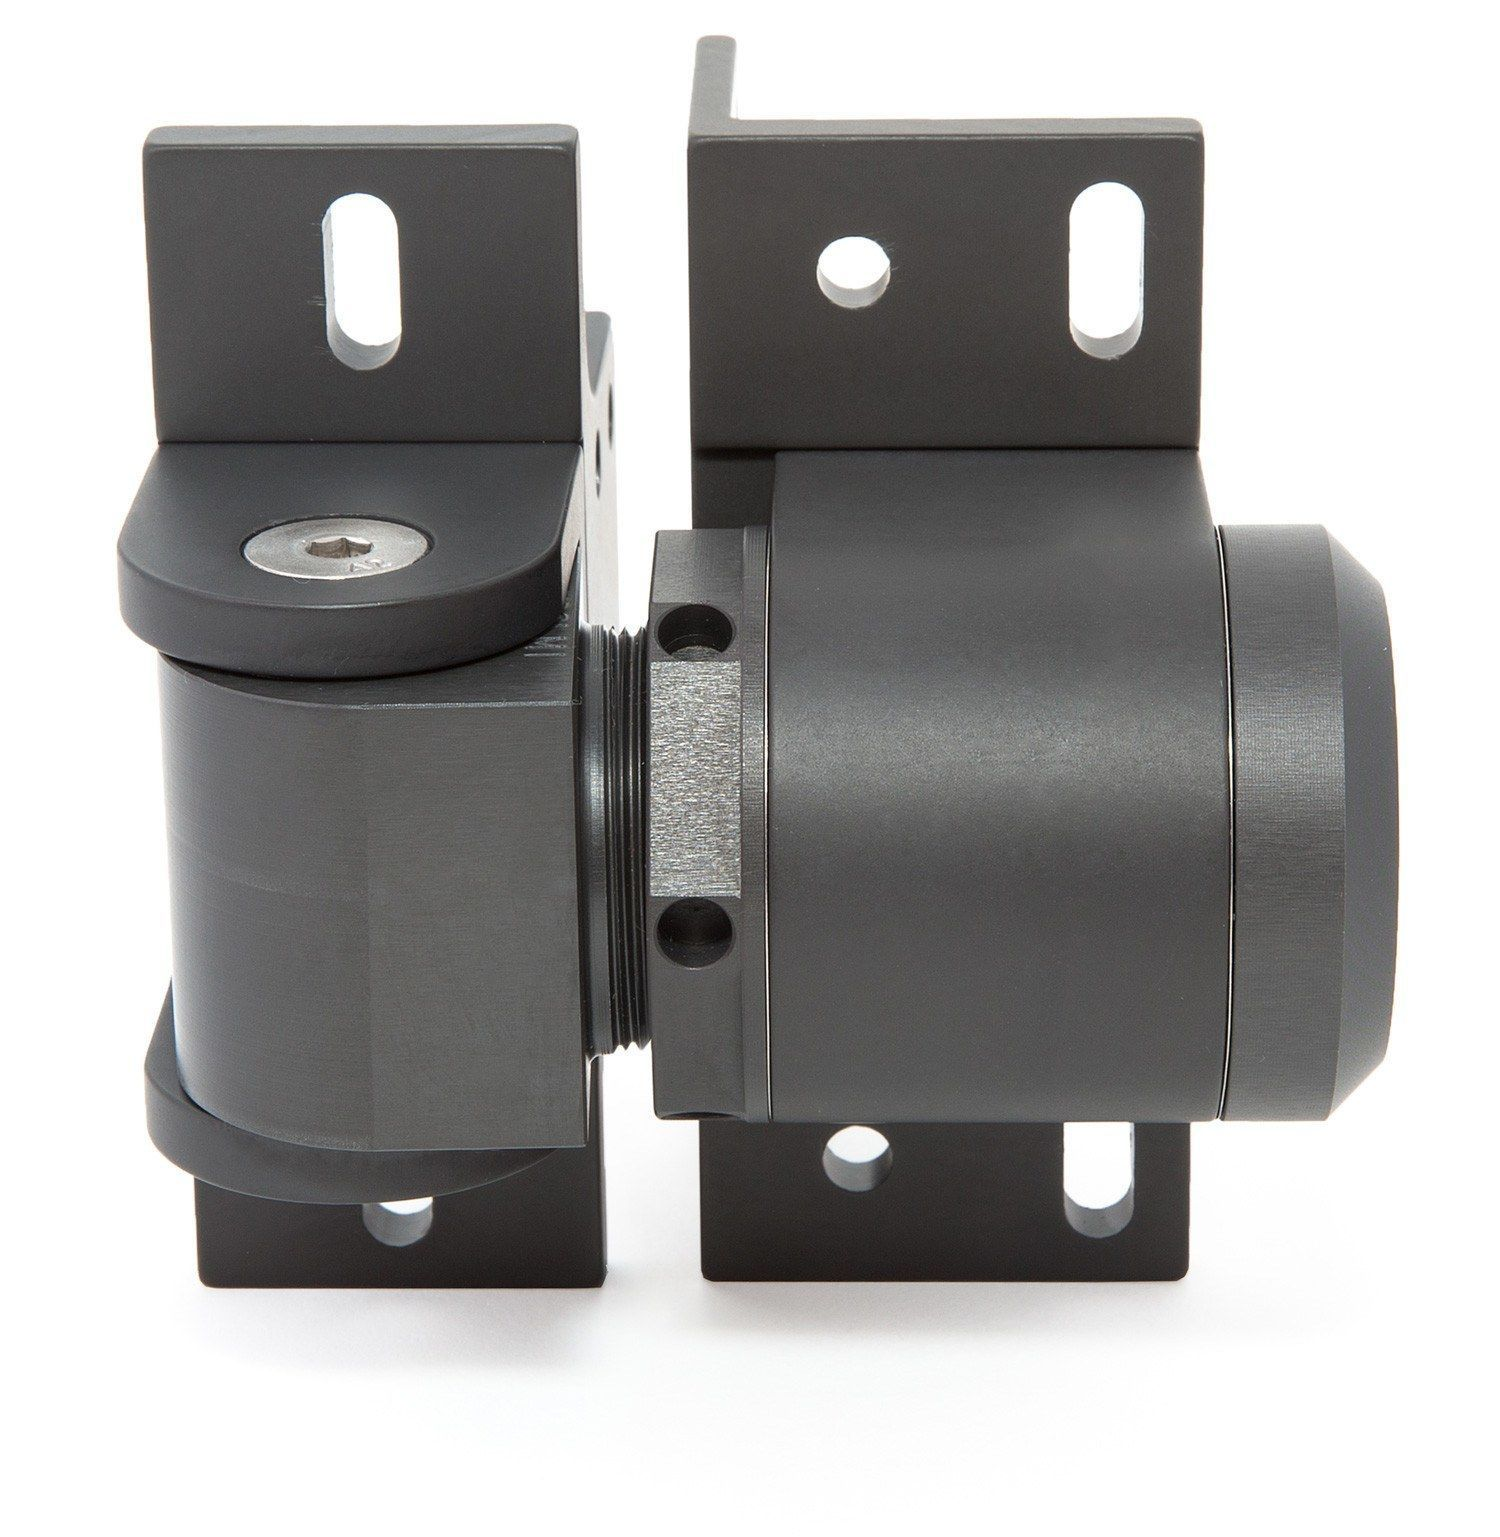 Sureclose Readyfit Hinges Multiple Adjustments Great For Pool Gates With Steel Brackets Hinges Pool Gate Bracket